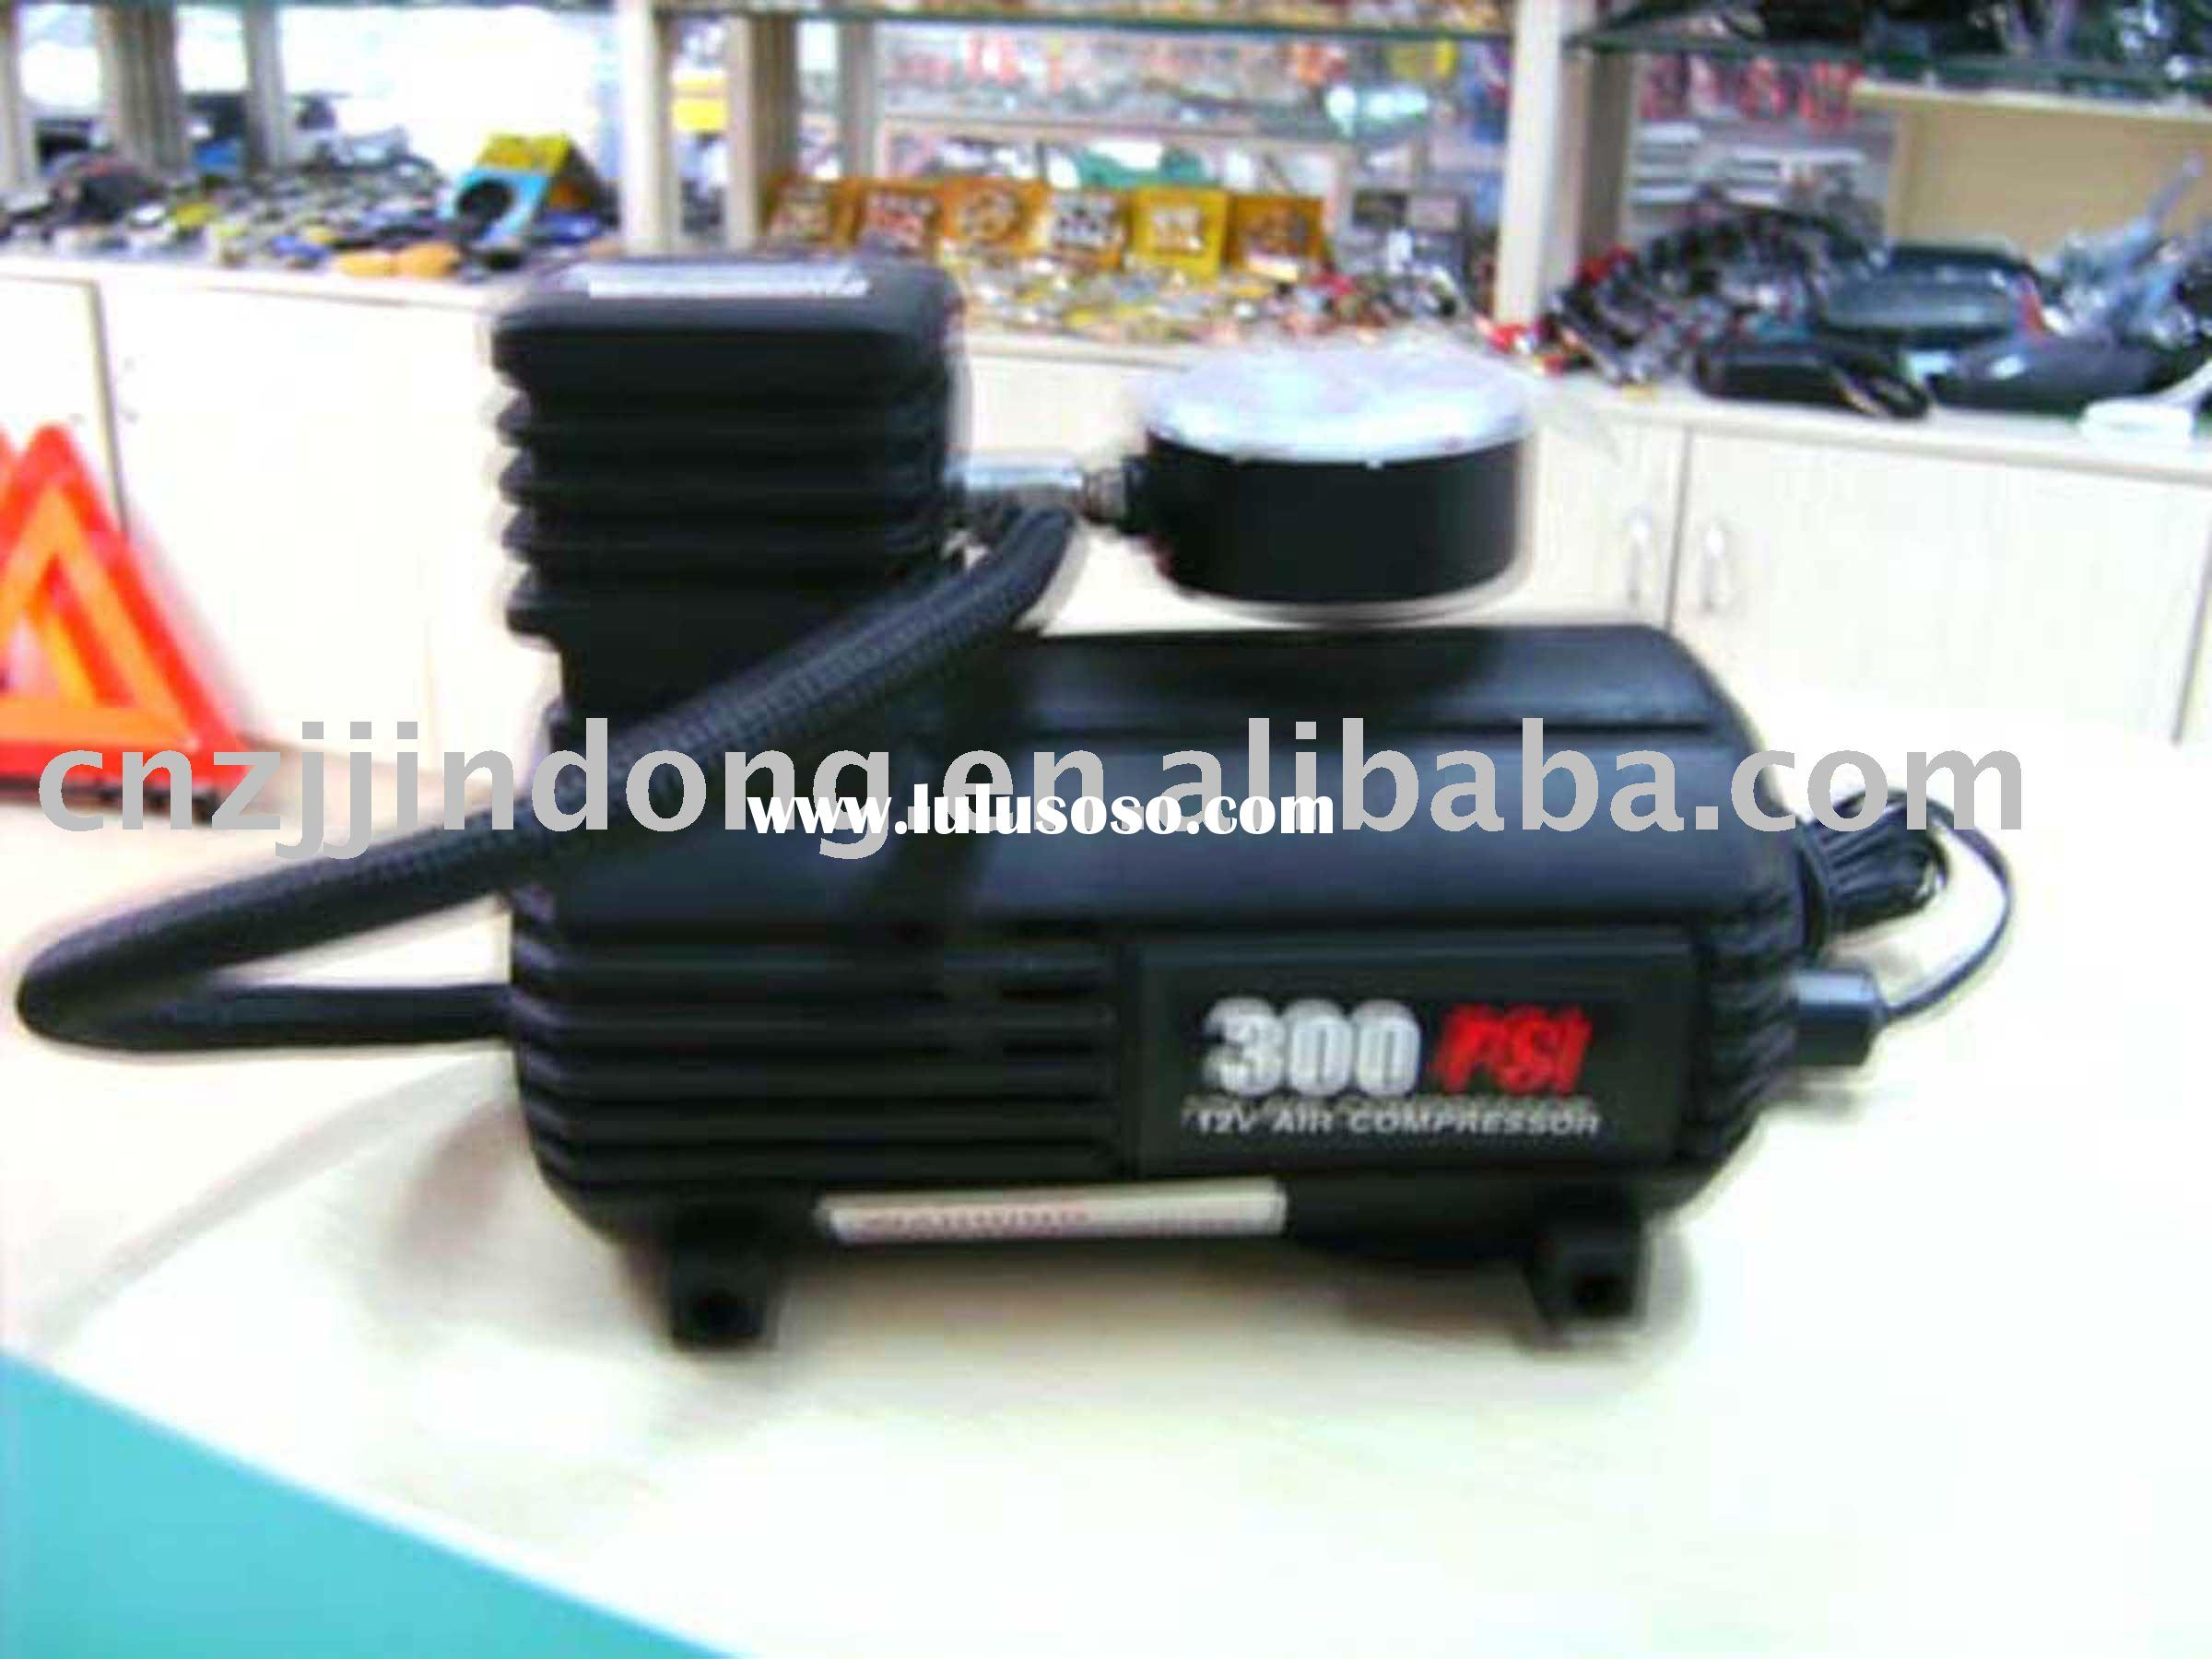 Plastic air compressor,Mini Air Compressor,auto pump/portable air compressor/auto air compressor